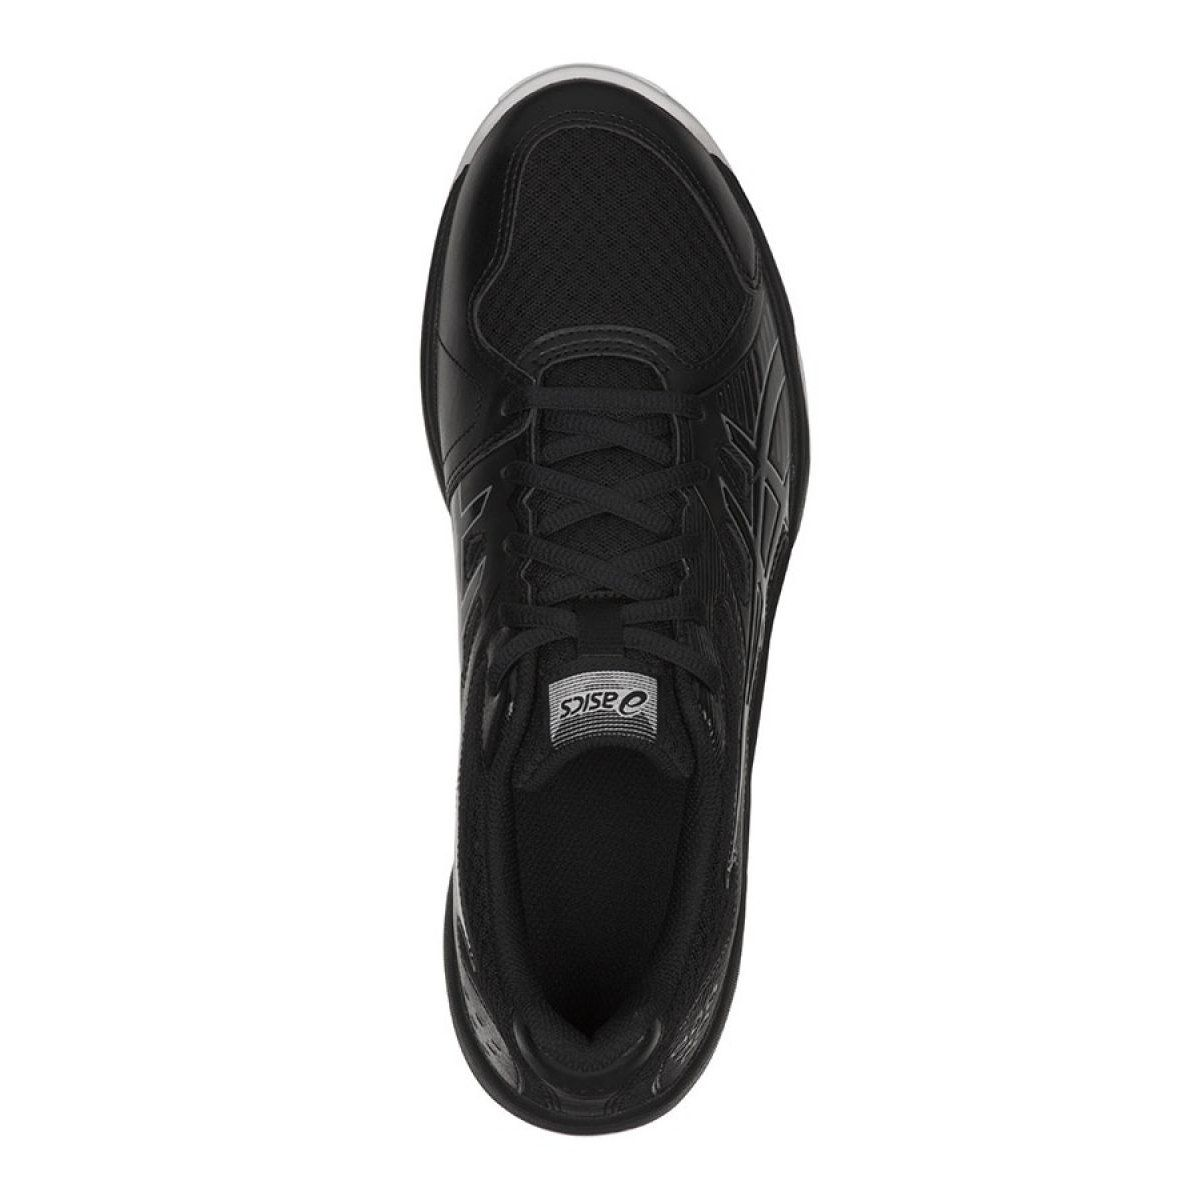 Volleyball Shoes Asics Upcourt 3 M 1071a019 001 Black Multicolored Volleyball Shoes Black Asics Shoes